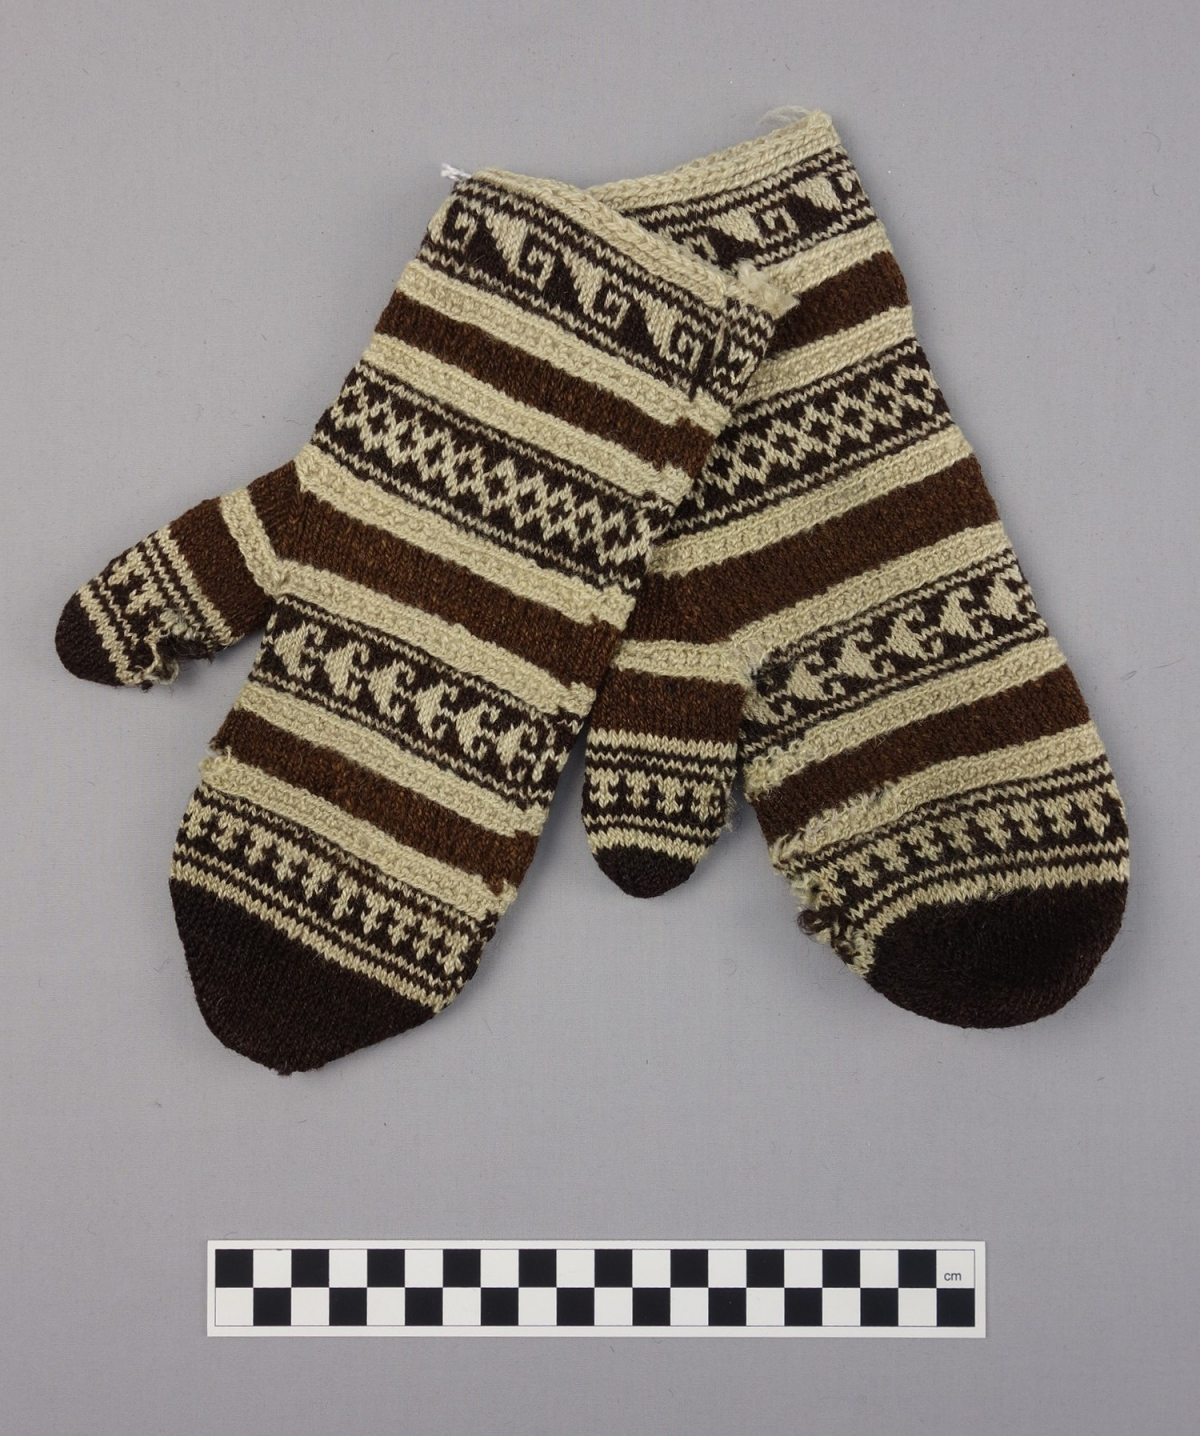 Knitted mittens from Afghanistan, mid-20th century.